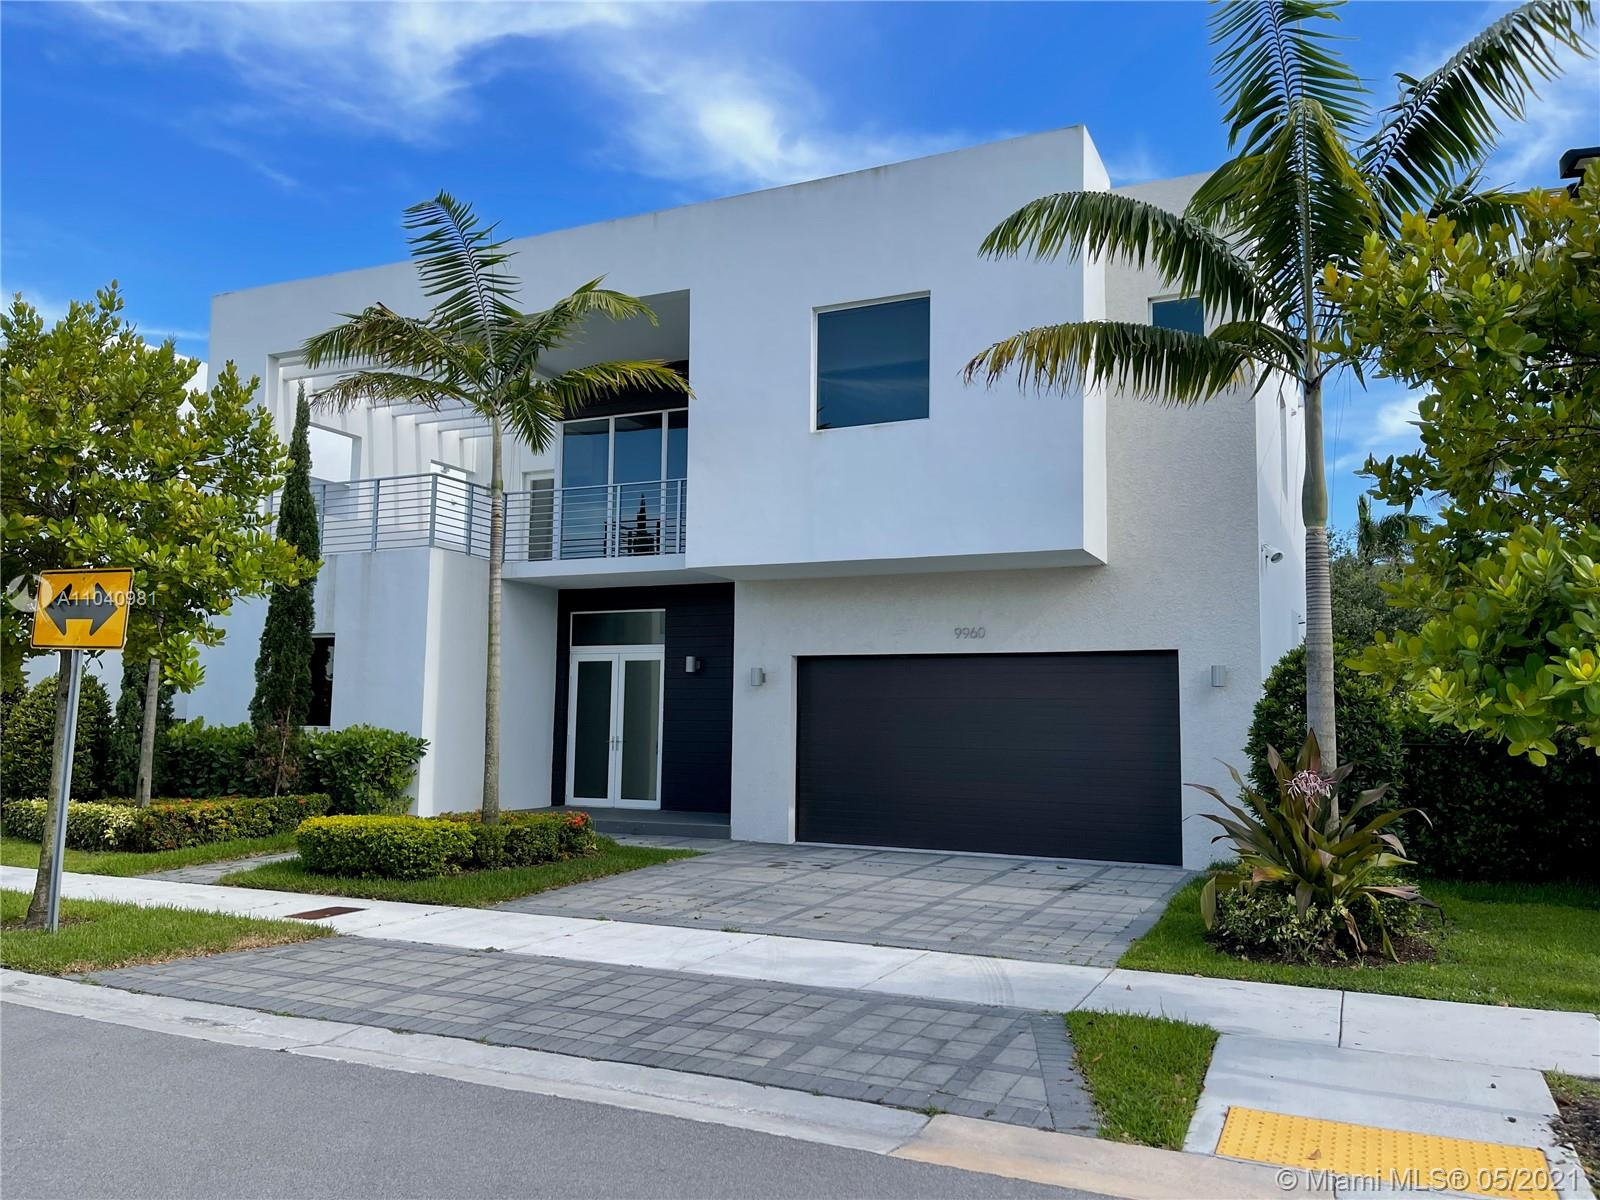 Welcome to Modern Doral 60, the finest and gated community in the city of Doral. Two story home features 5 bedrooms and 5 bathrooms. This house comes with upgrades: A private pool, Pergola, Summer Kitchen. Master bedroom's double walk-in closets installed as well. Exactly done for move-in ready.